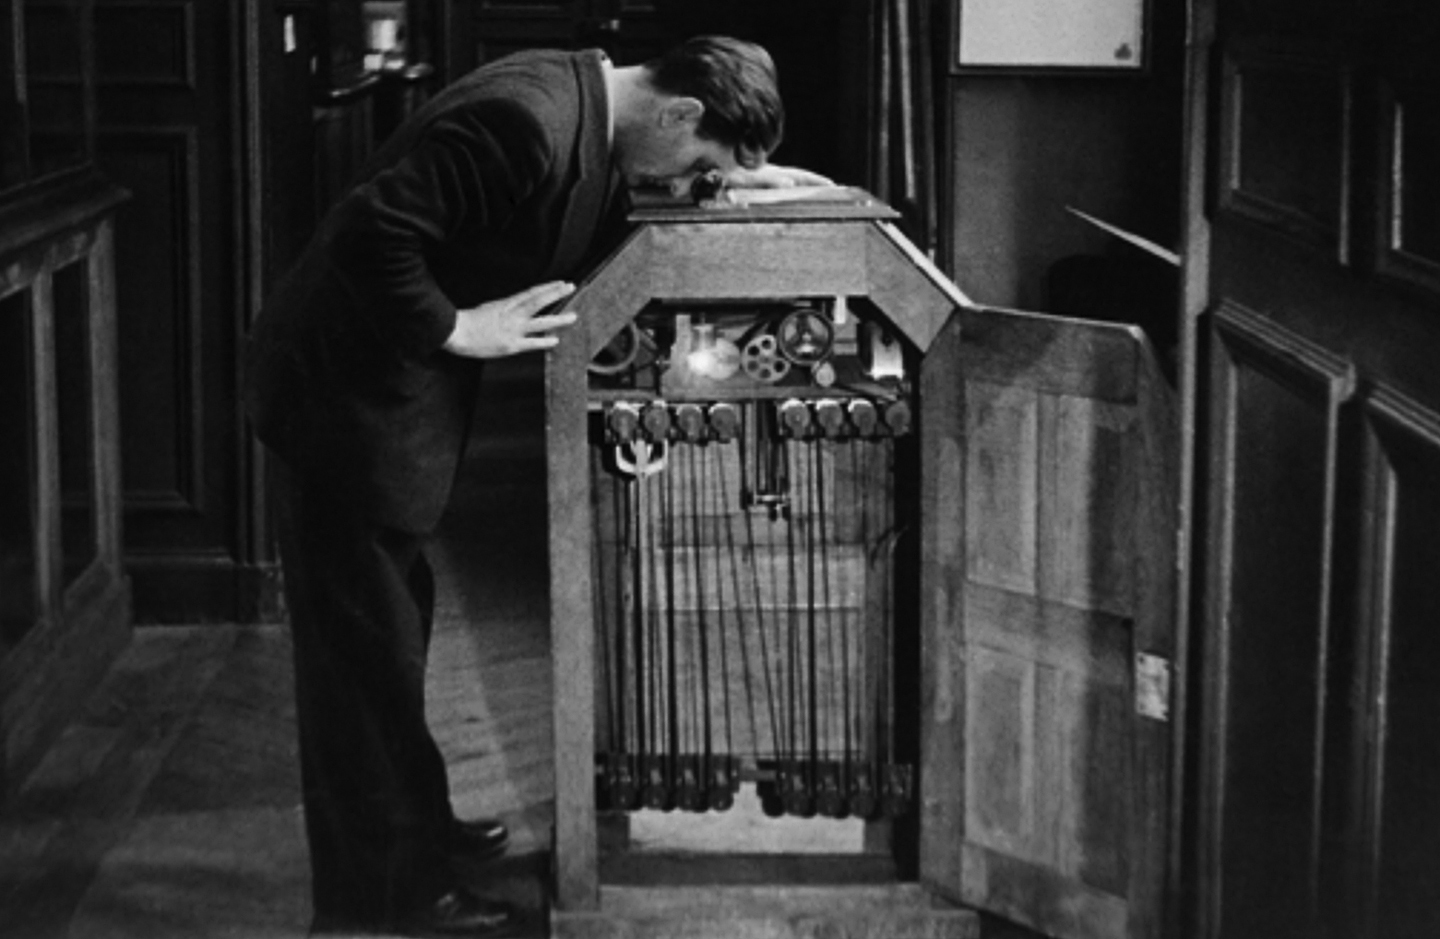 ASC Museum: Kinetoscope - The American Society of